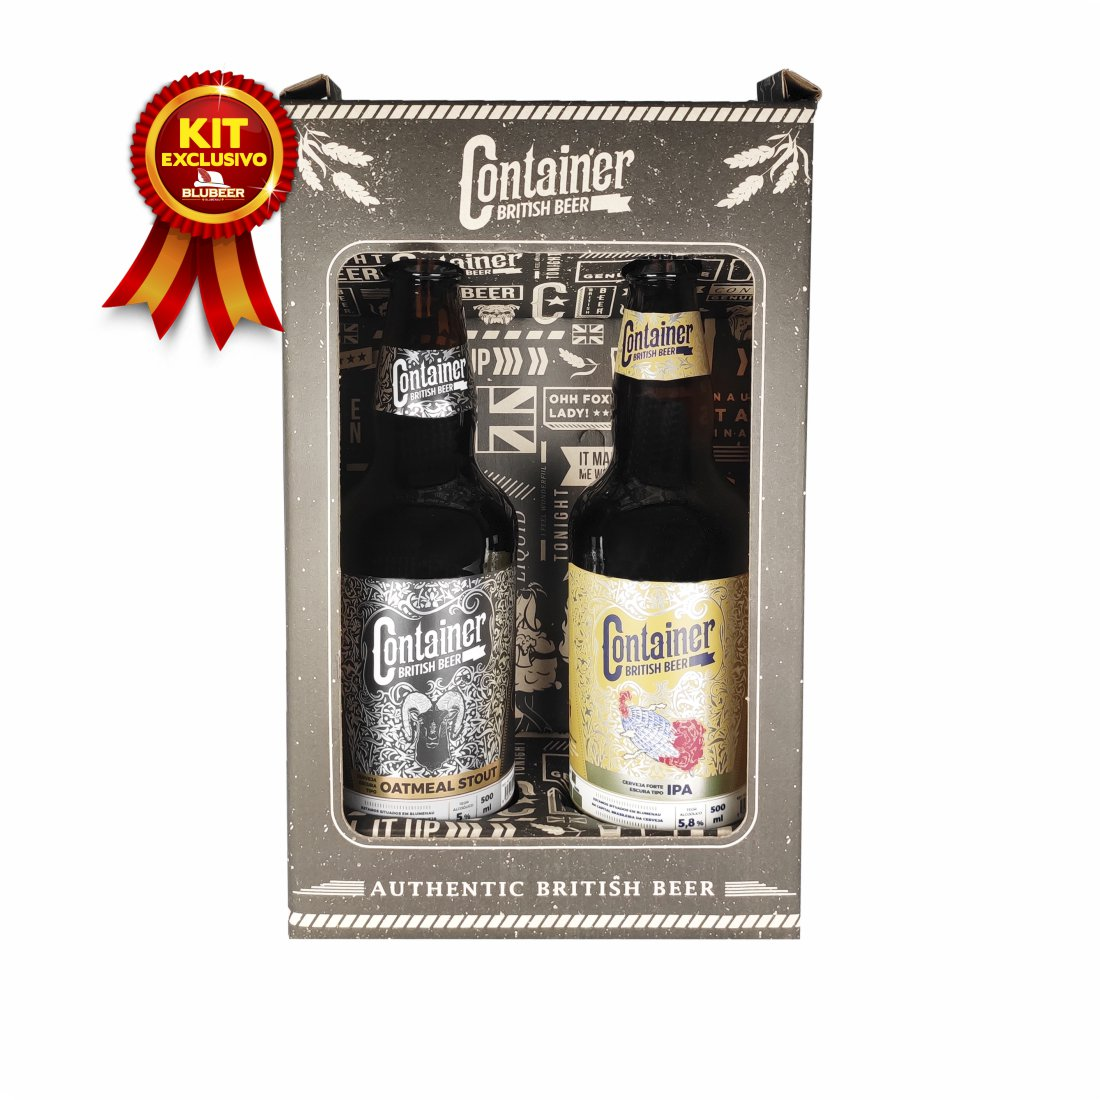 KIT CONTAINER STOUT + BLOND ALE 500ML